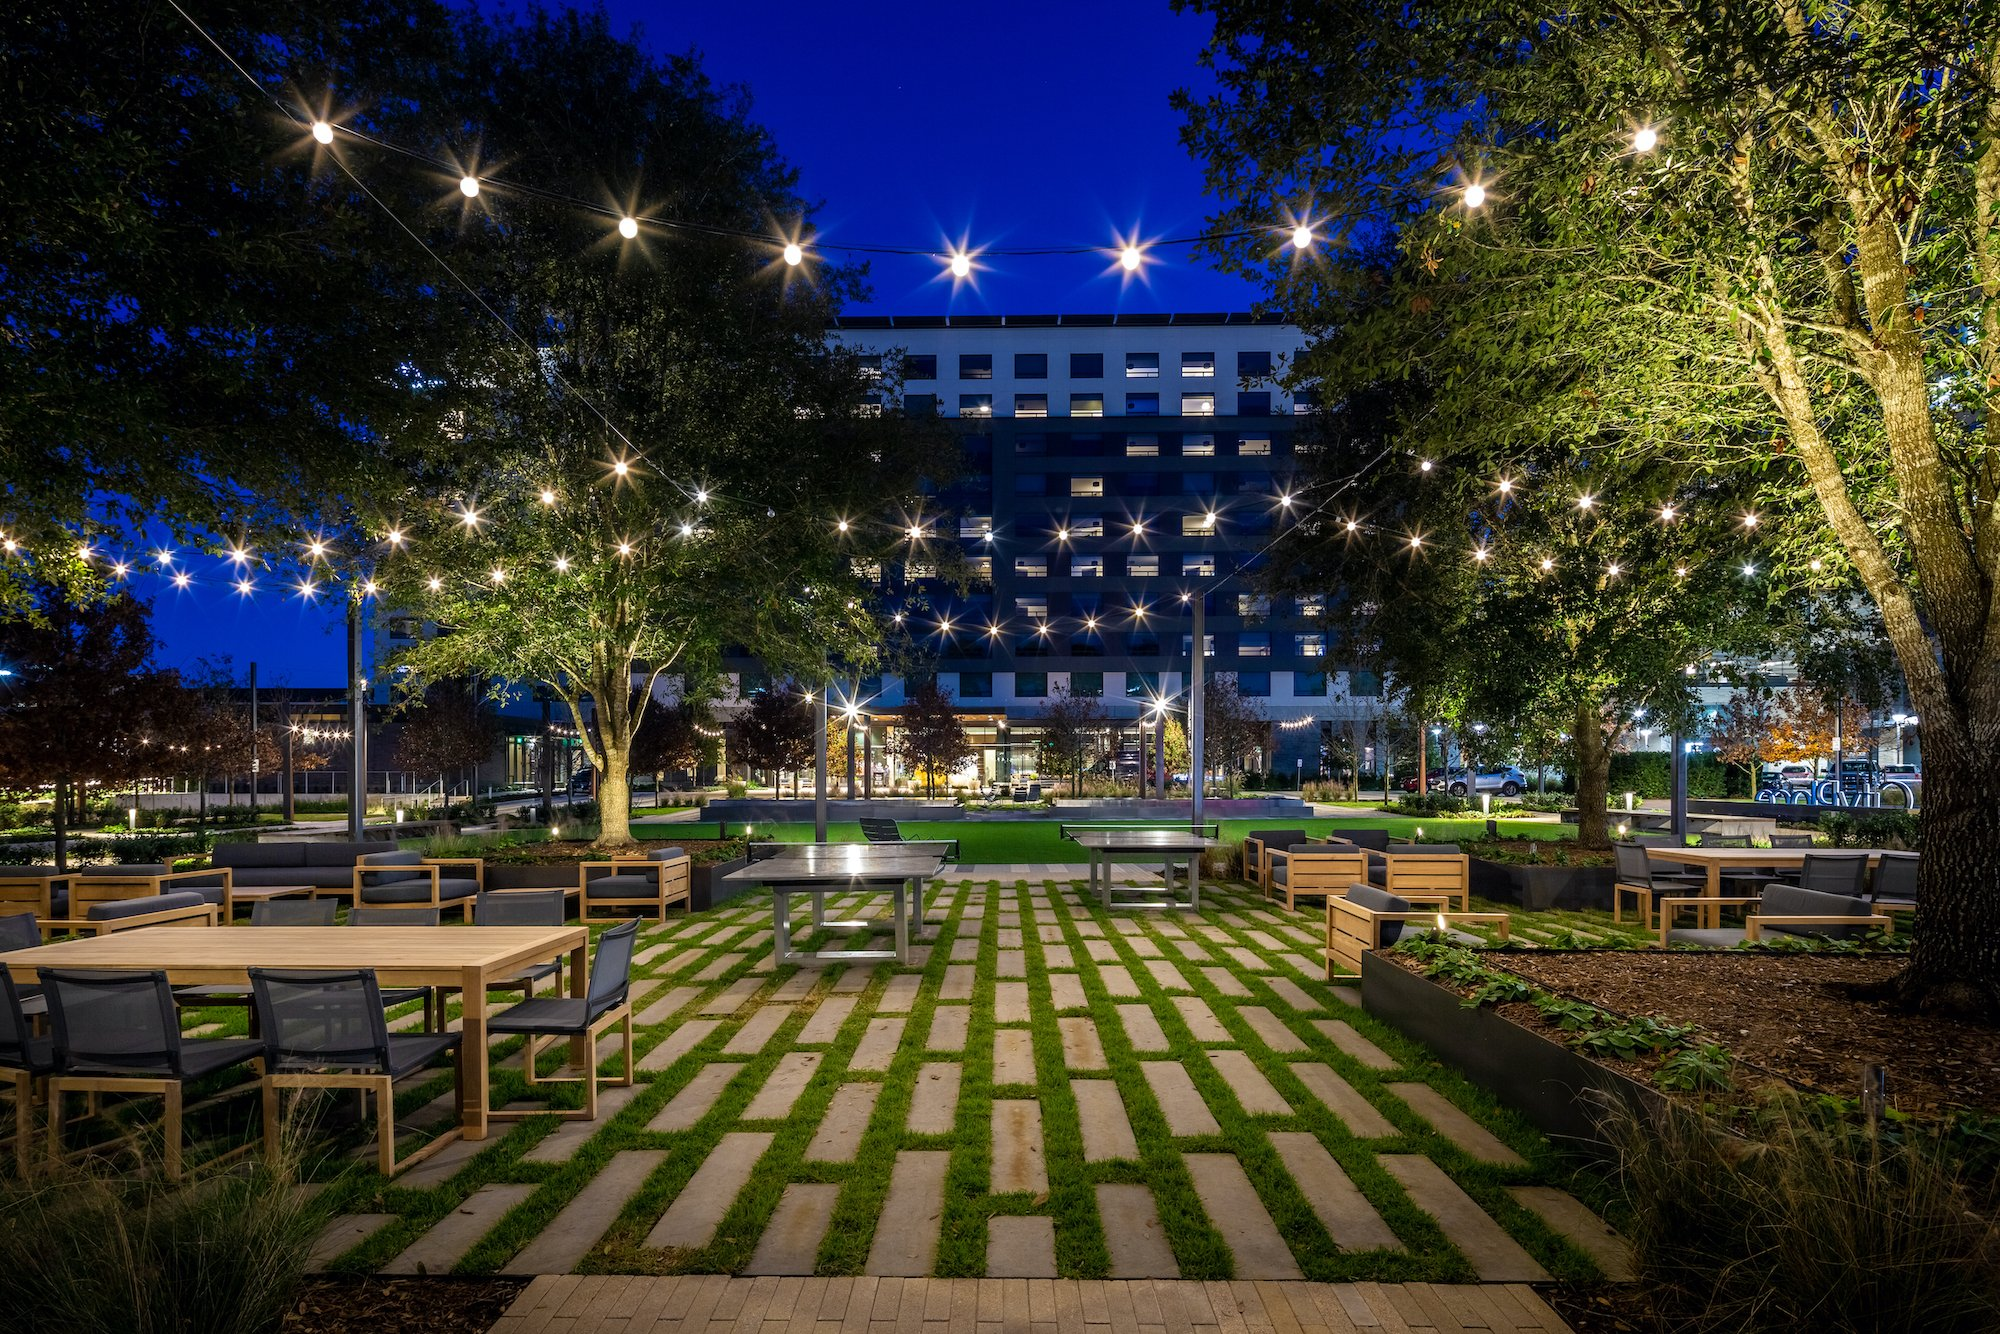 Lifestyle and service tenants join the growing retail line up at Cityplace, the urban core of North Houston's Springwoods Village